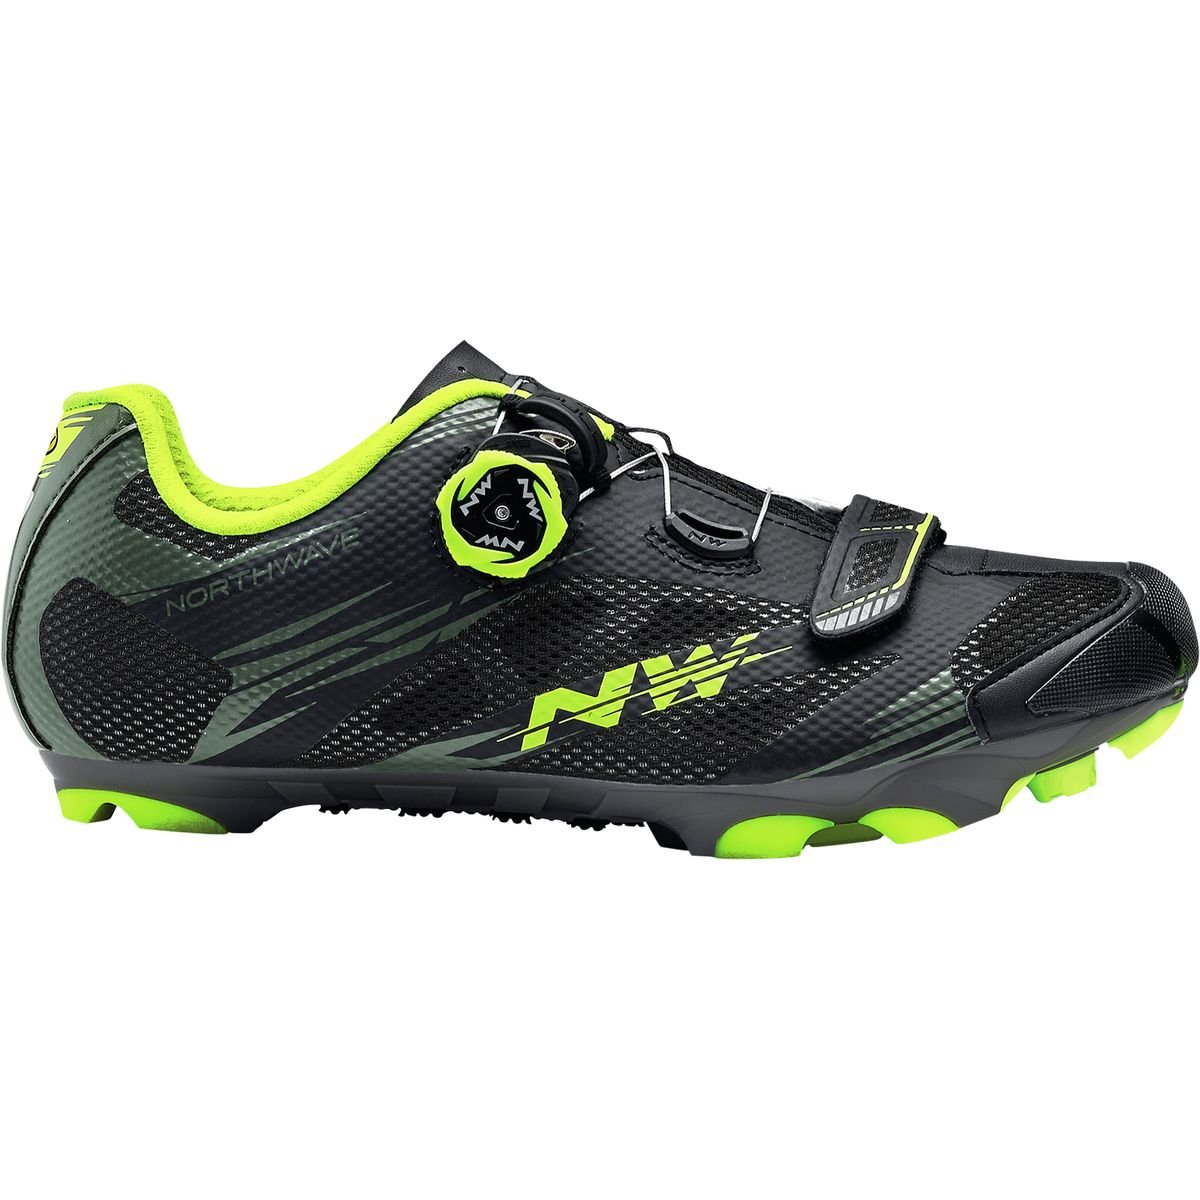 ノースウェーブScorpius 2 Plus Cycling Shoe – Men 's 40 Black Military/Yellow Fluo B07BRG7MGZ